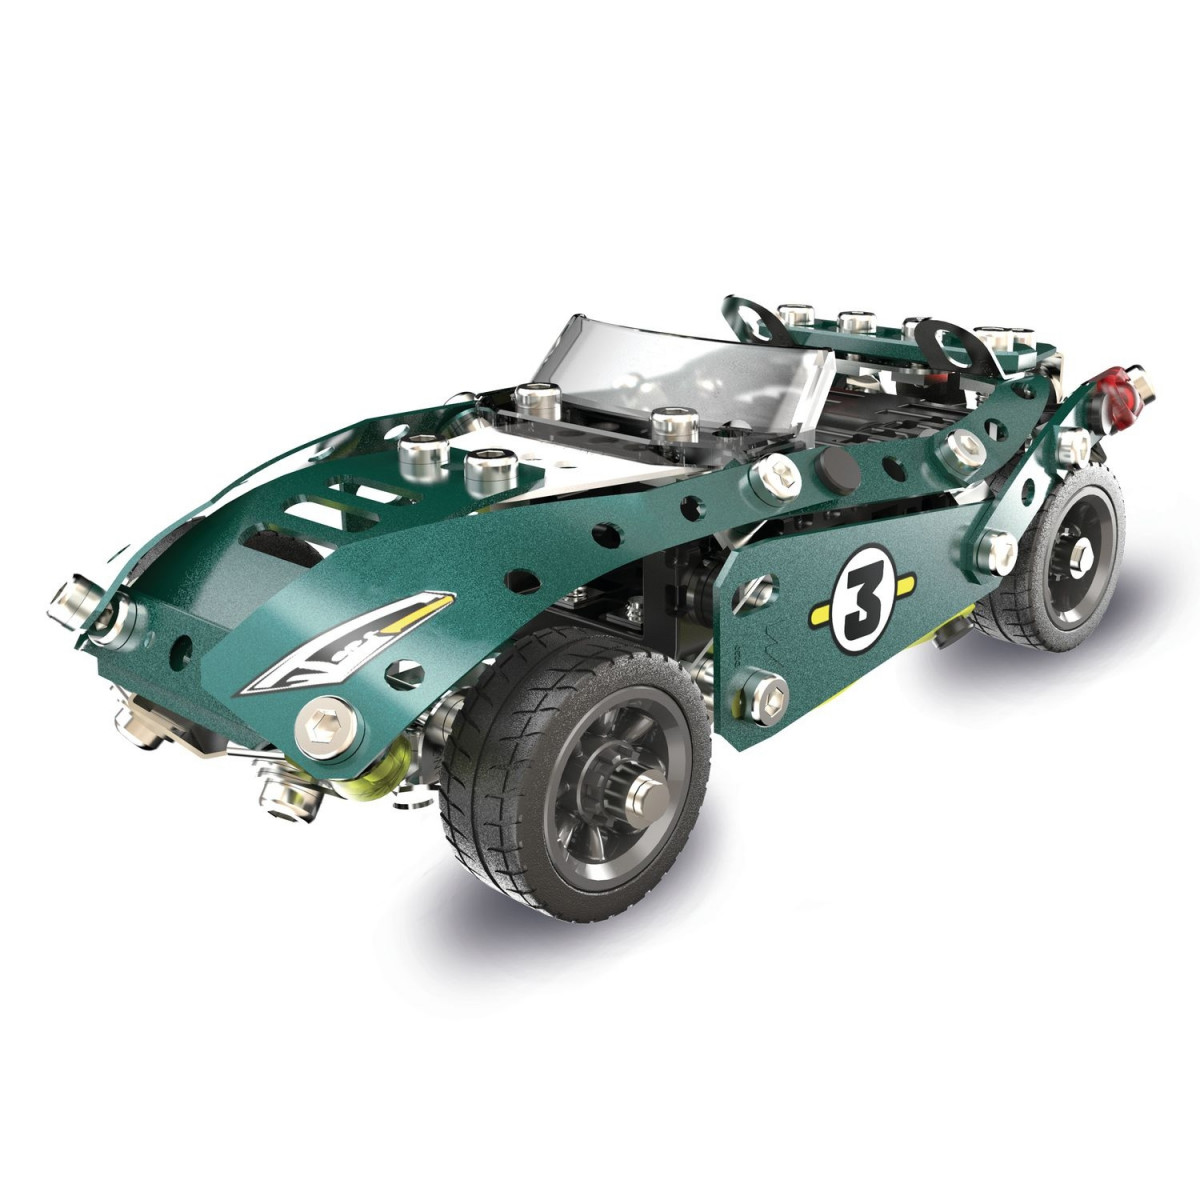 6040176 CABRIOLET RETROFRICTION 5 MODELES MECCANO